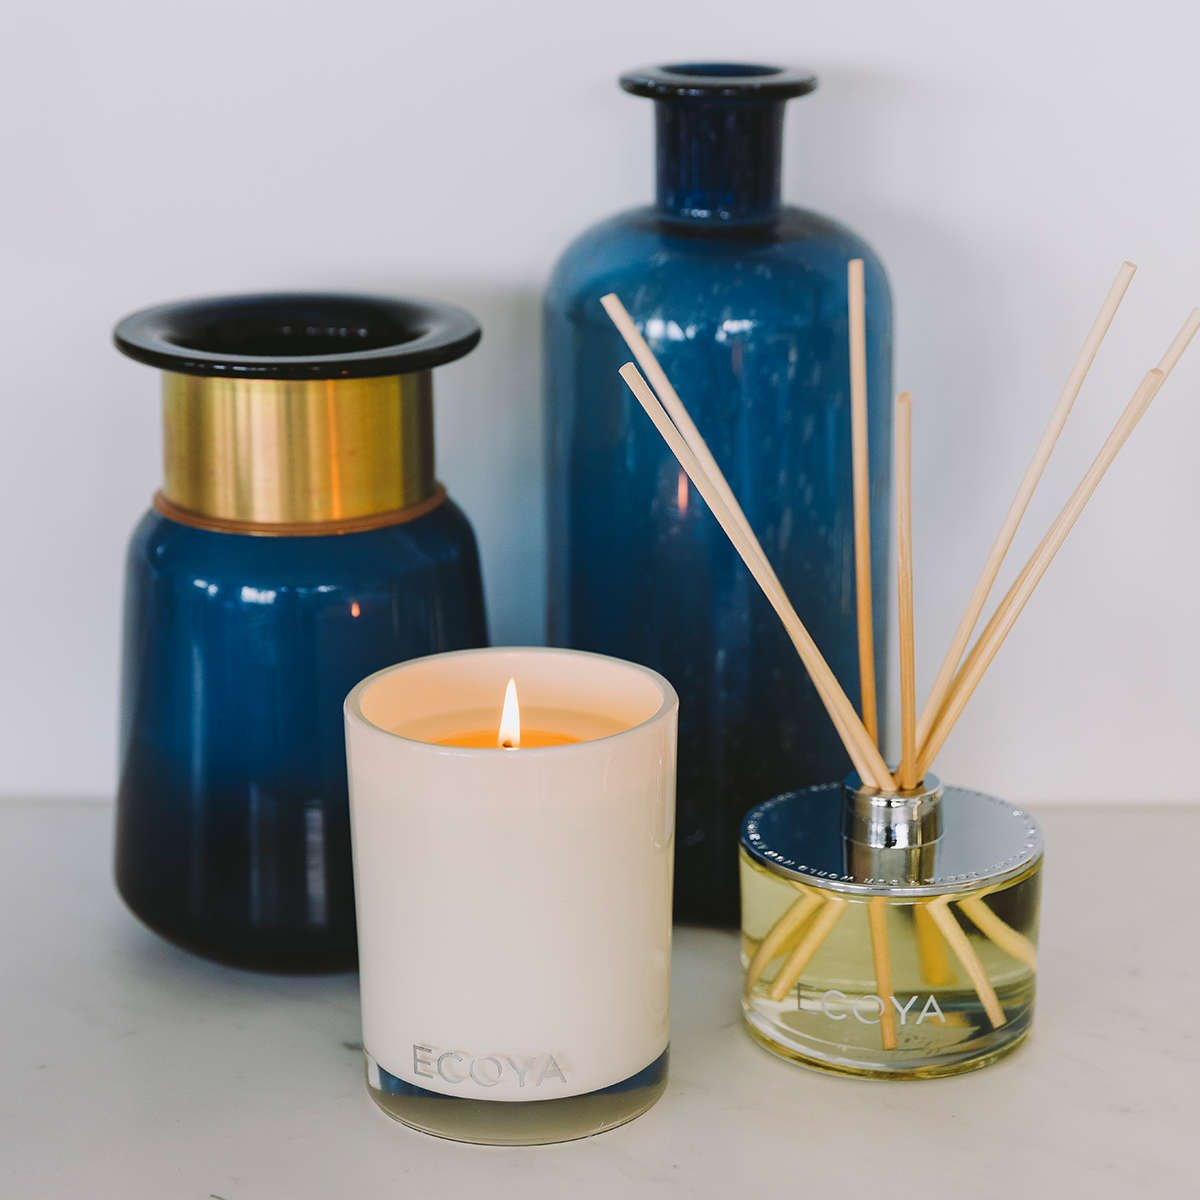 Limited edition soy wax candles